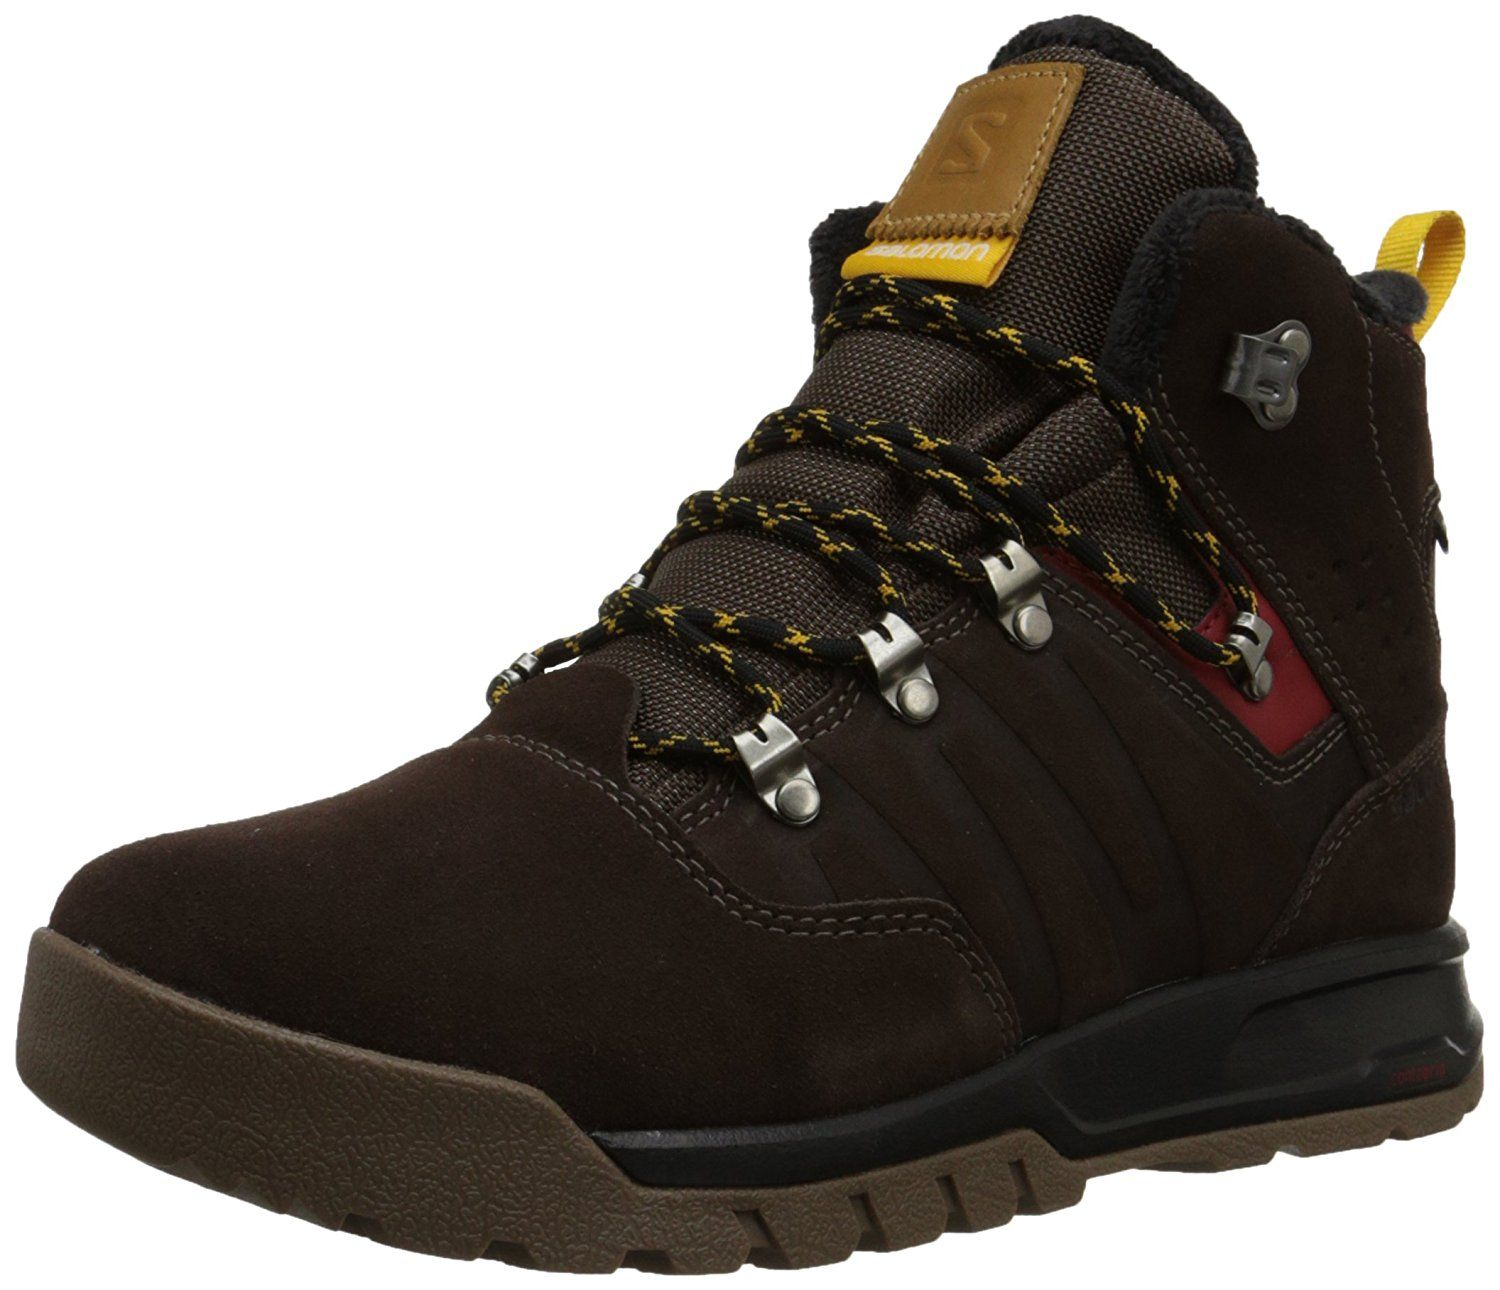 Salomon Men's Utility TS CSWP Winter Wear Hiking Boot ^^ Additional info :  Men's boots